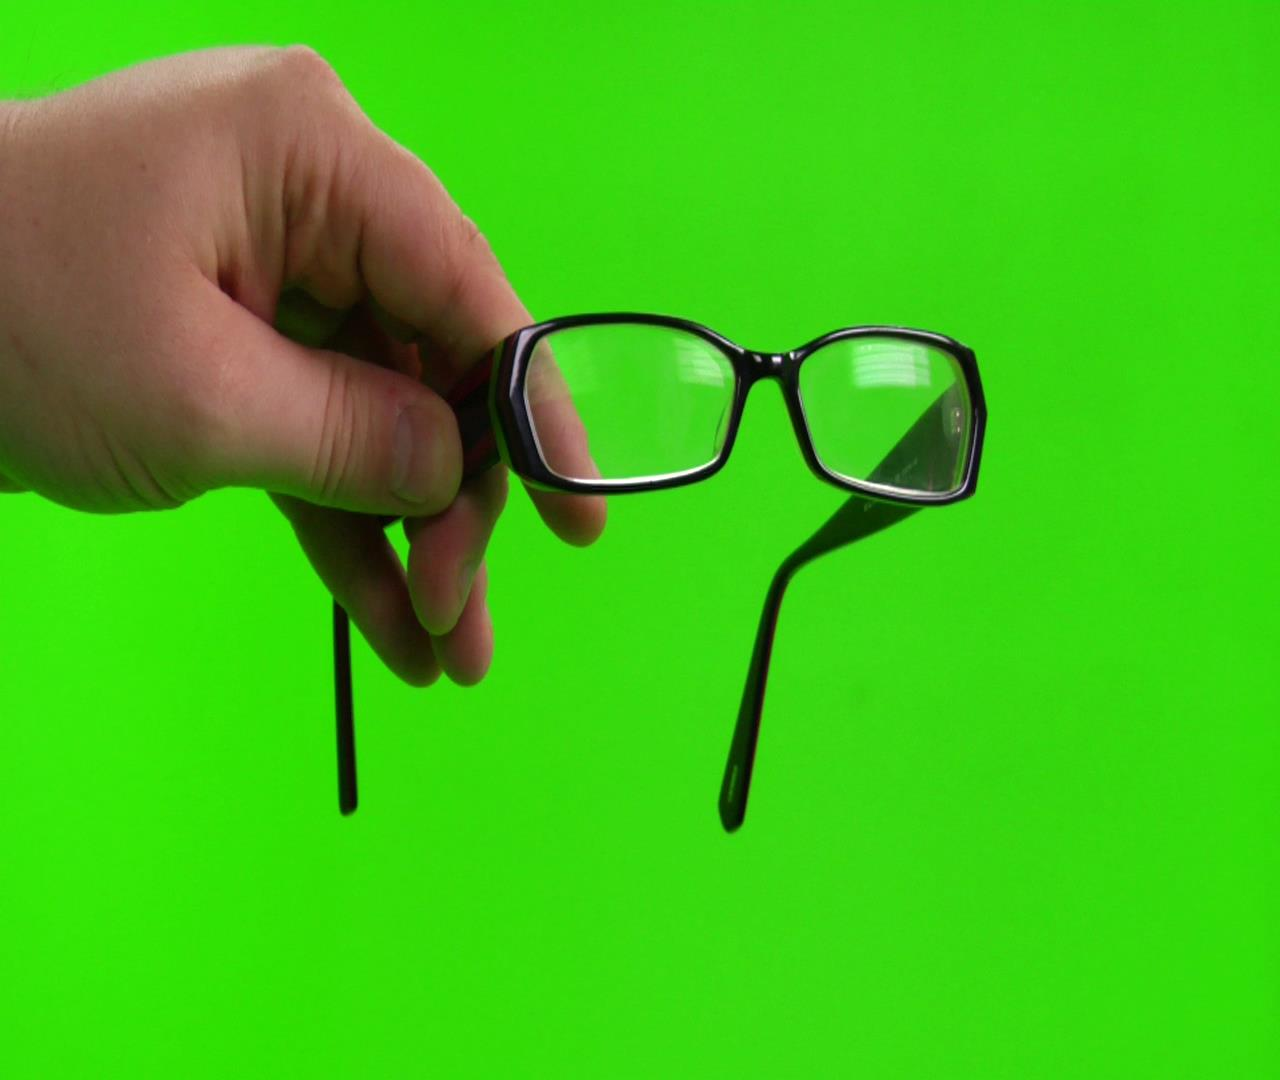 Green With Envy… The Decline Of The VFX Industry In A Little Green Square [A Tall Glass of Shame]